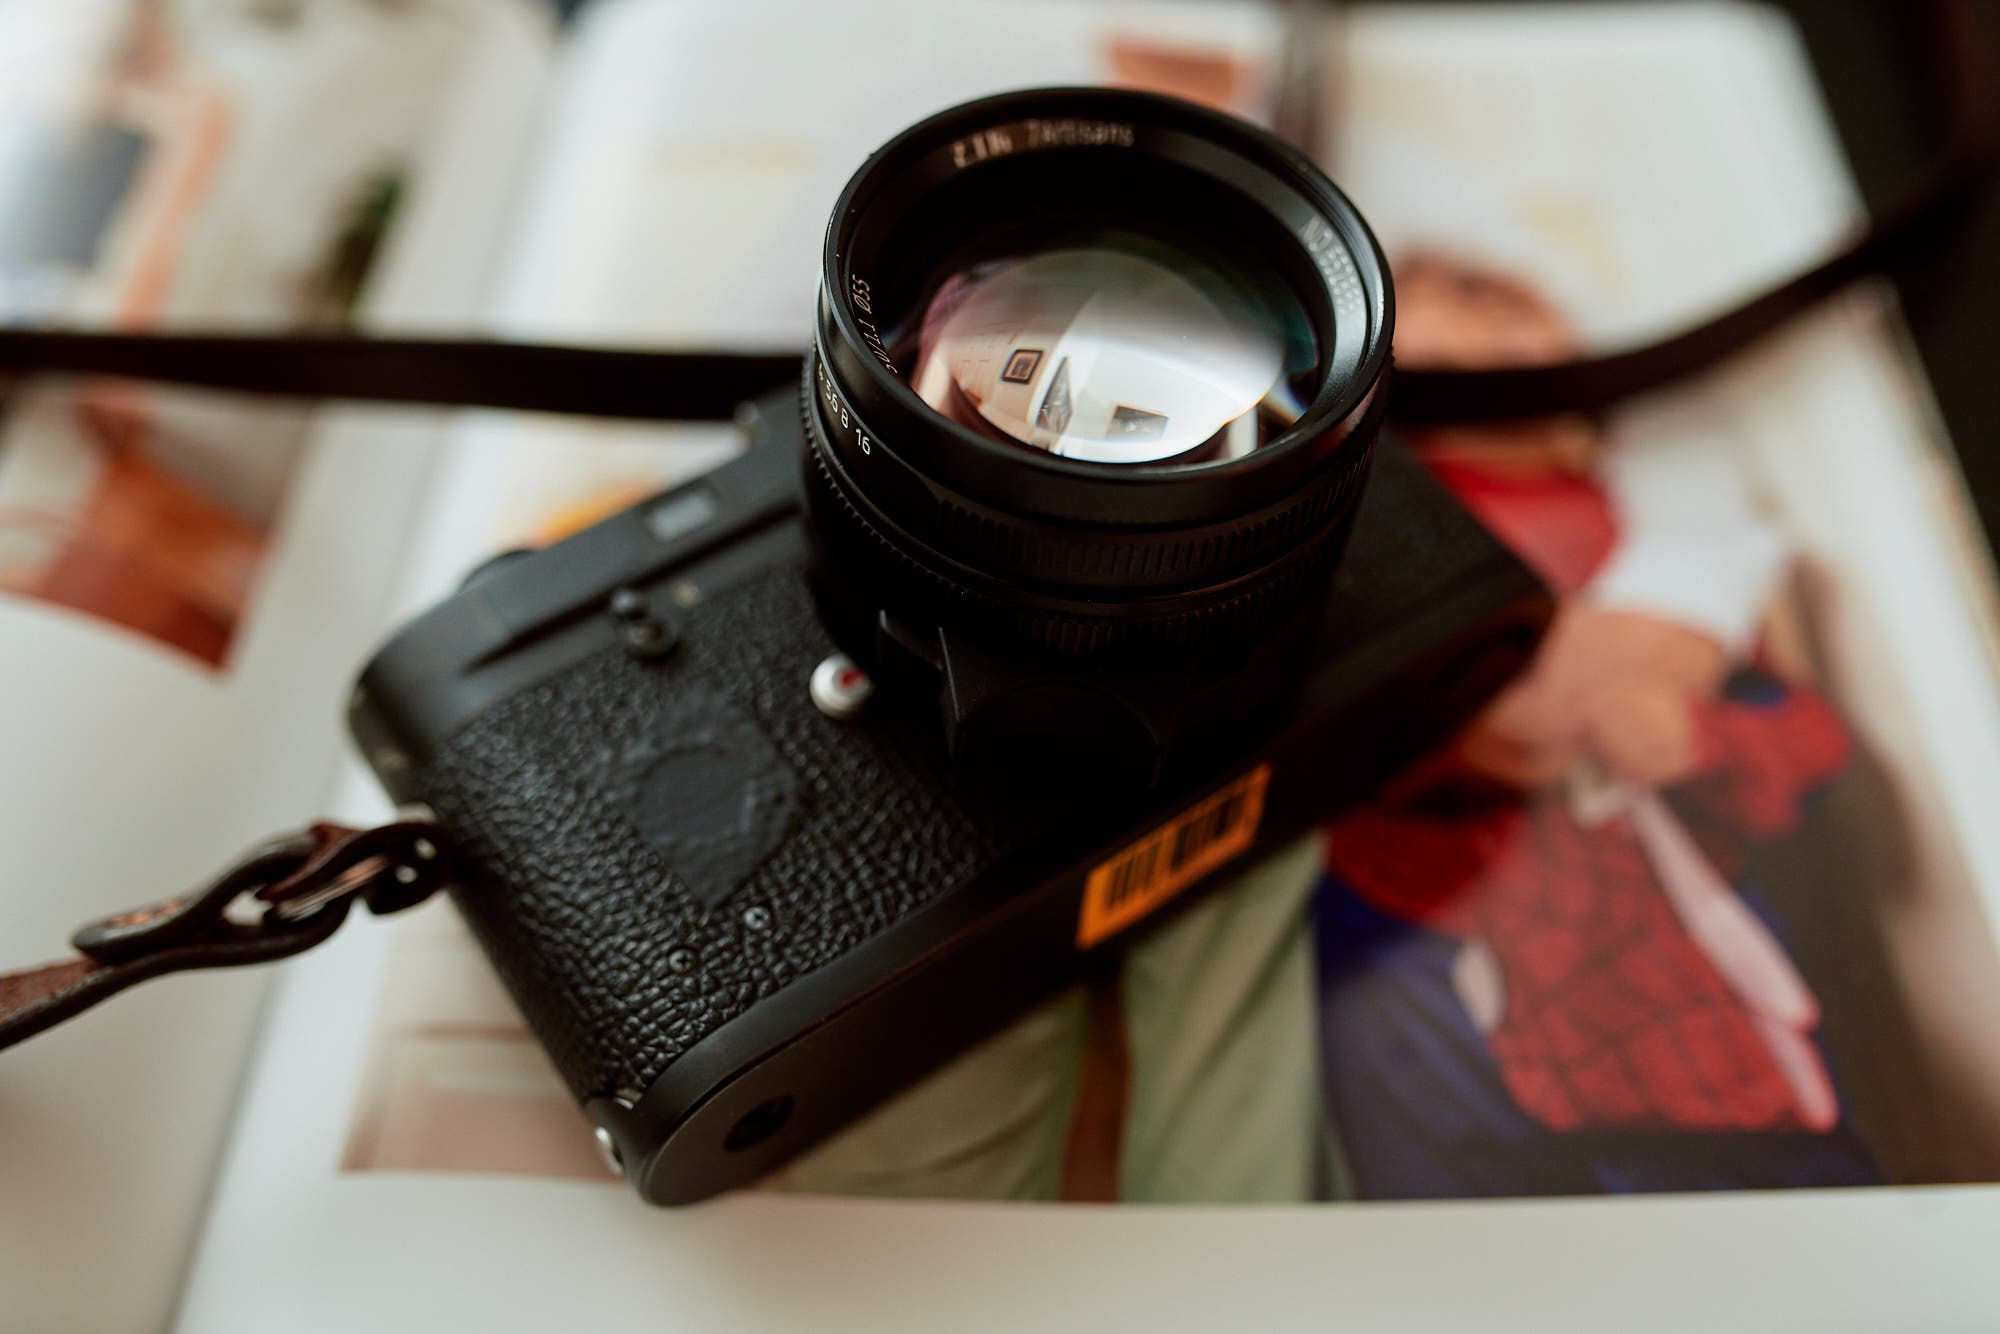 Are Fast Aperture Lenses Really Worth the Money? Probably Not!